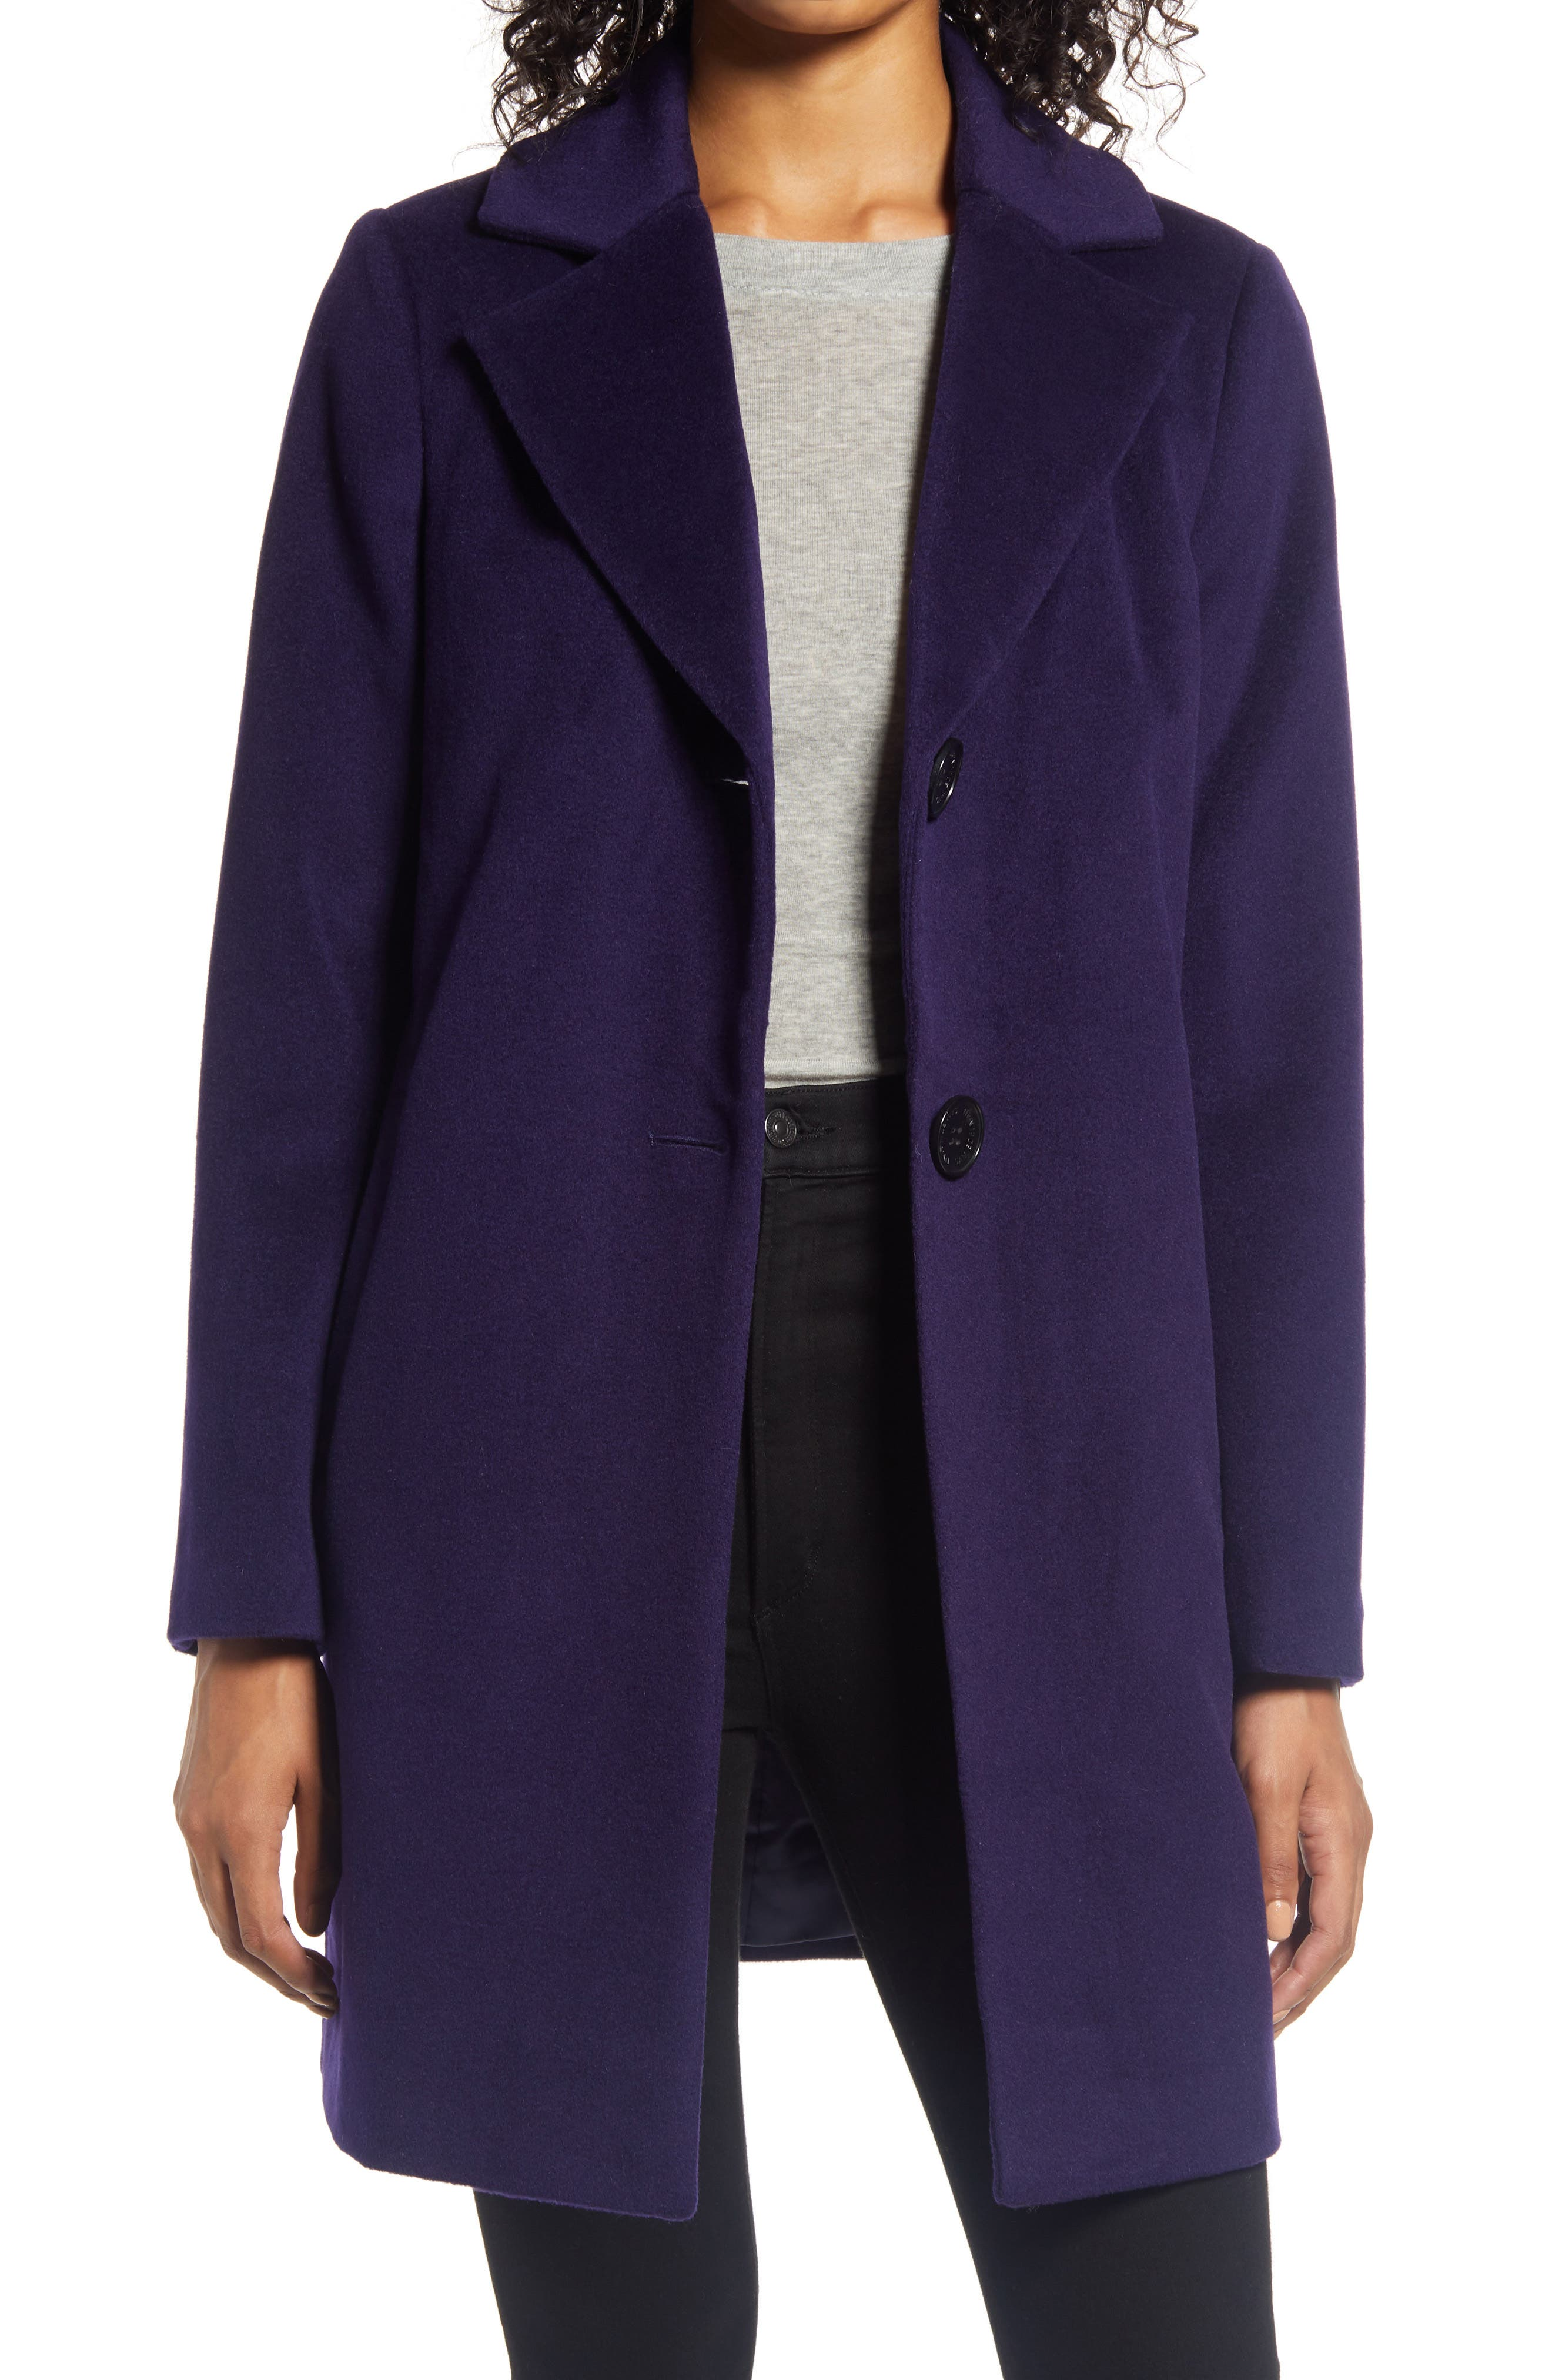 Women/'s wool walk jacket navy blue with dots on red